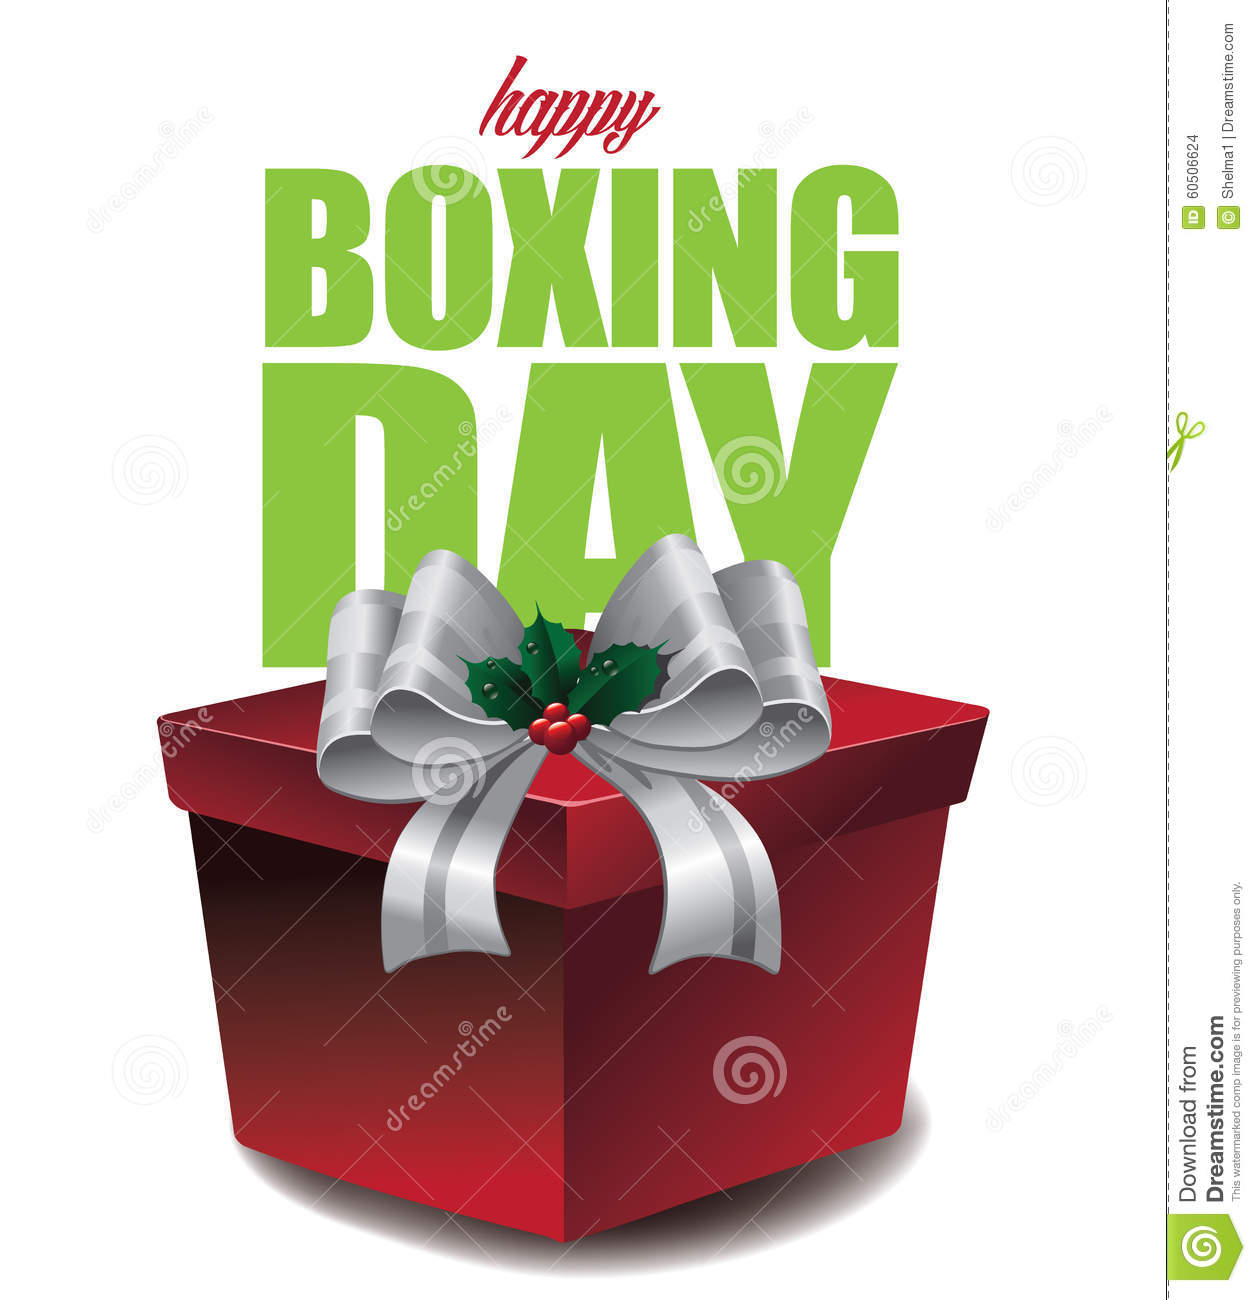 Happy Boxing Day design stock vector. Image of happy ... Boxing Day